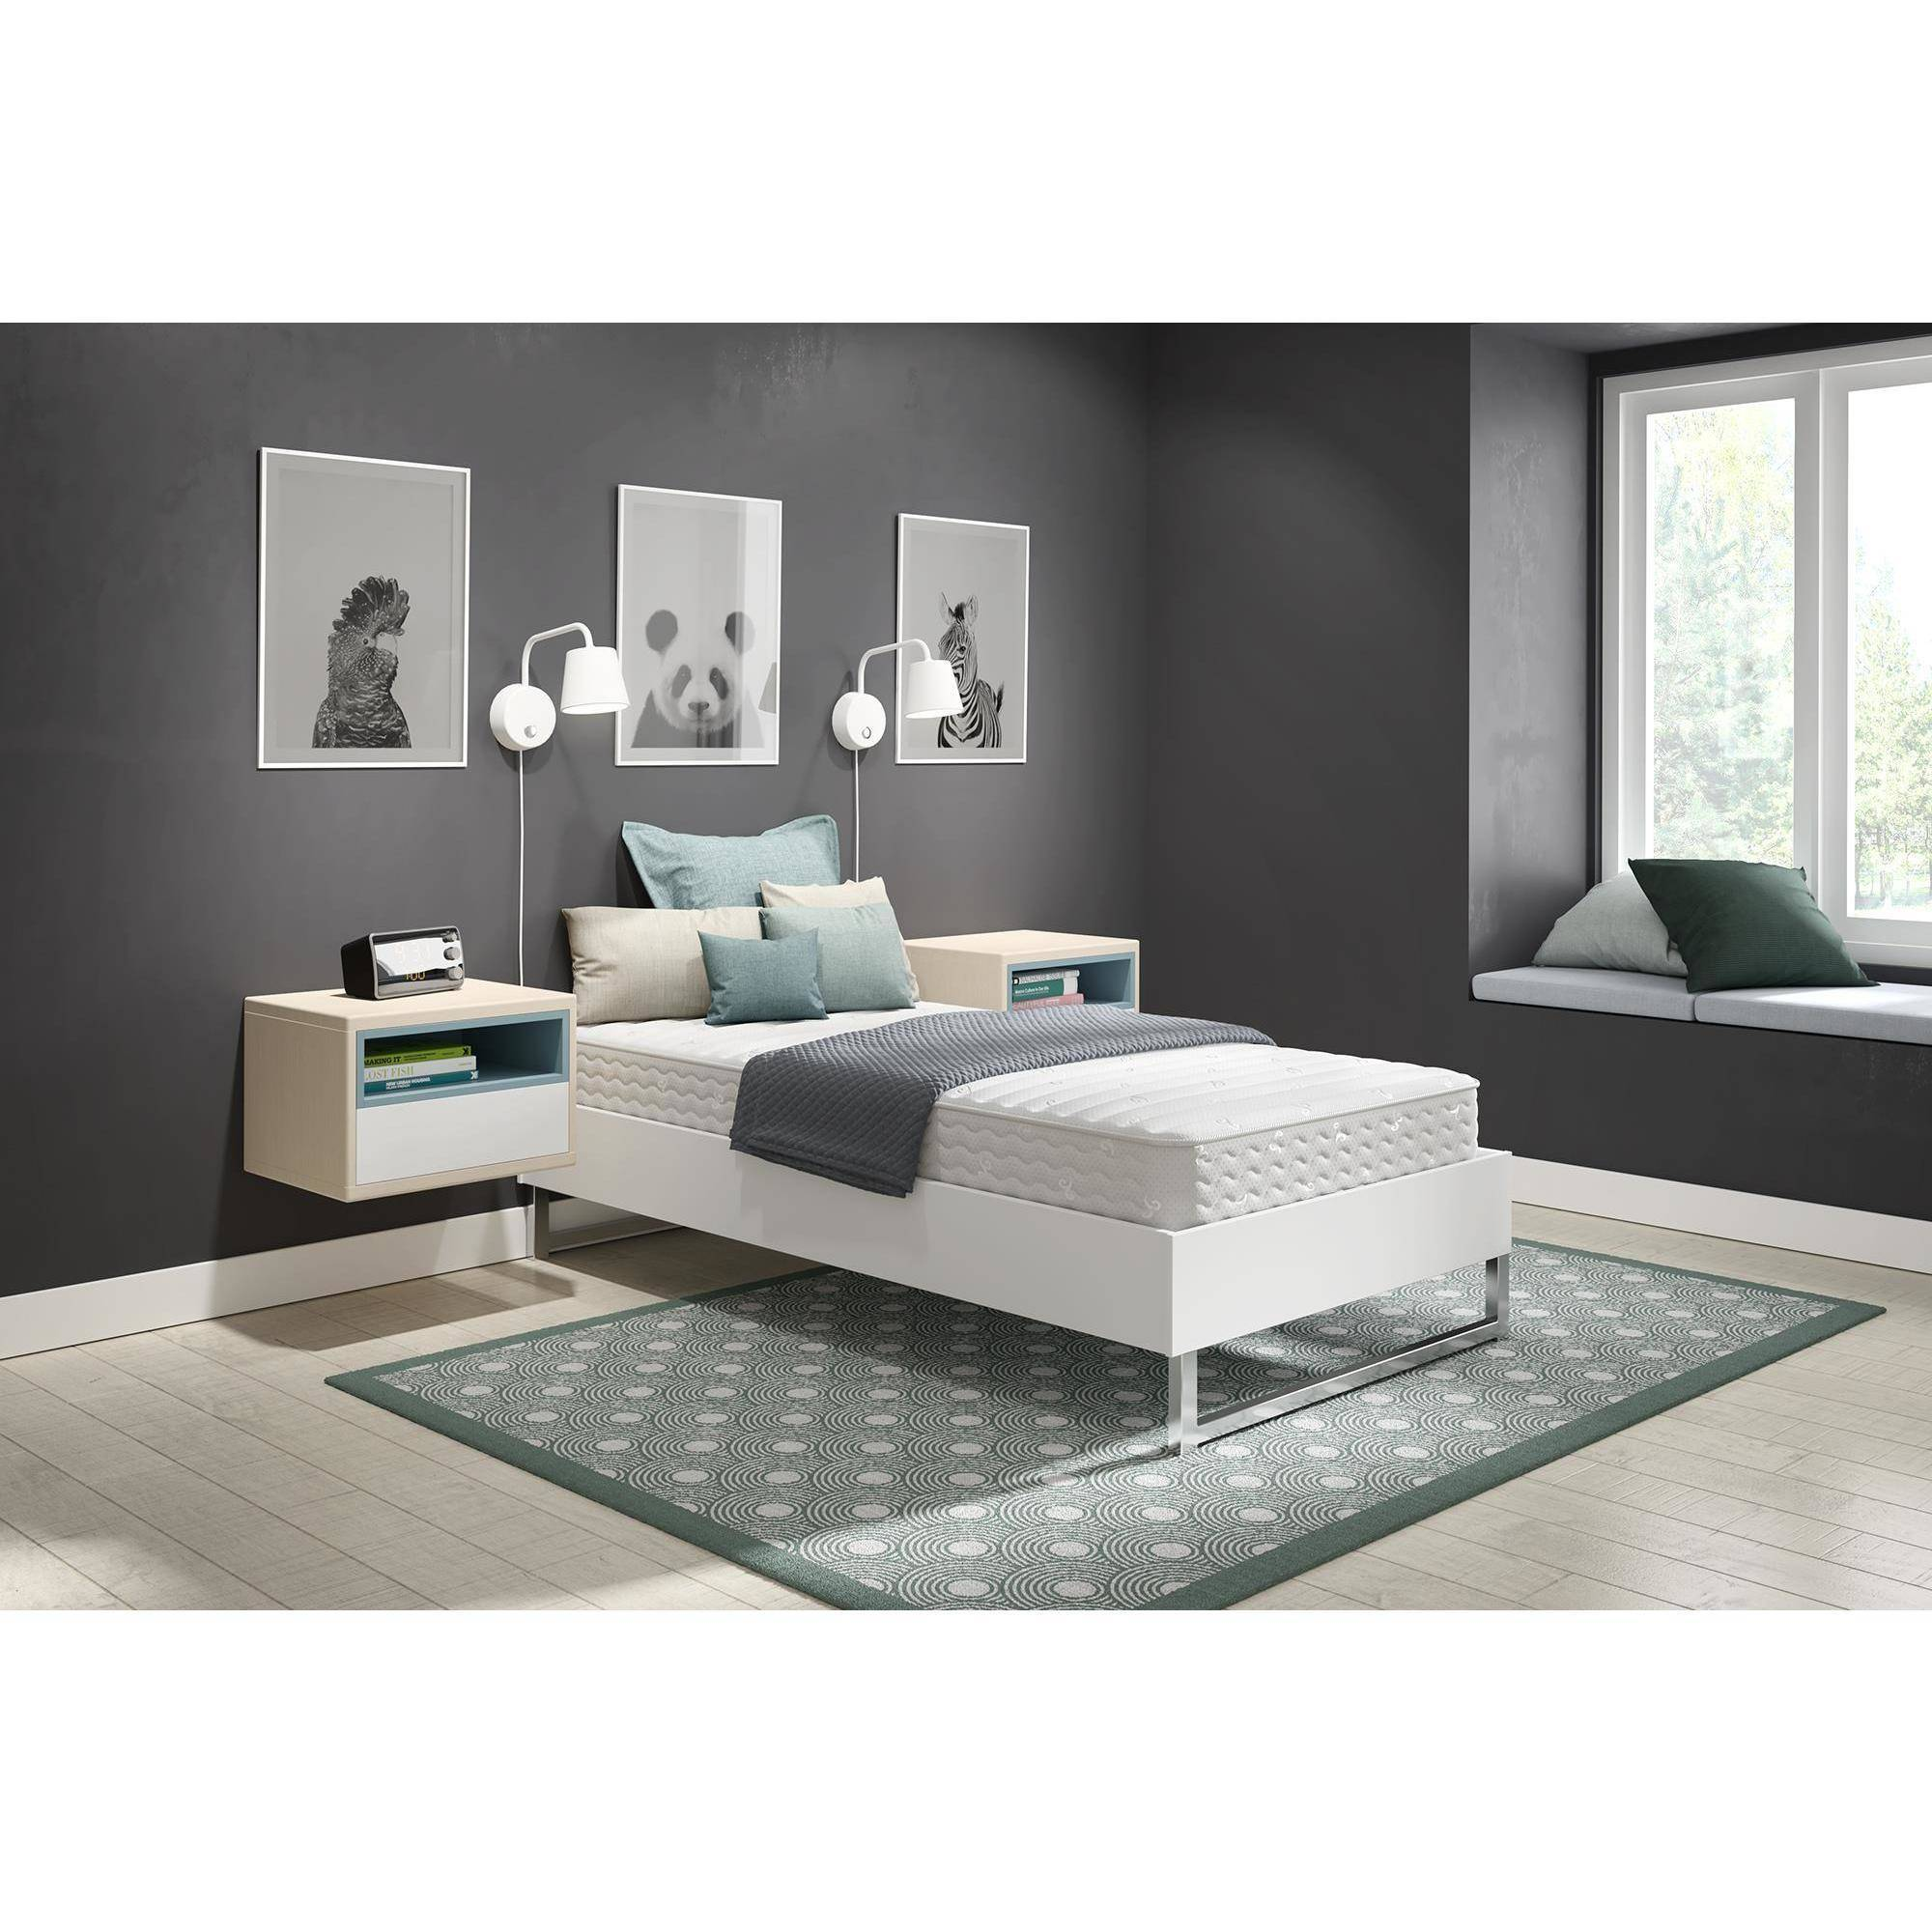 "Signature Sleep Contour- 8"" Independently-Encased Coil Mattress, Multiple Sizes"